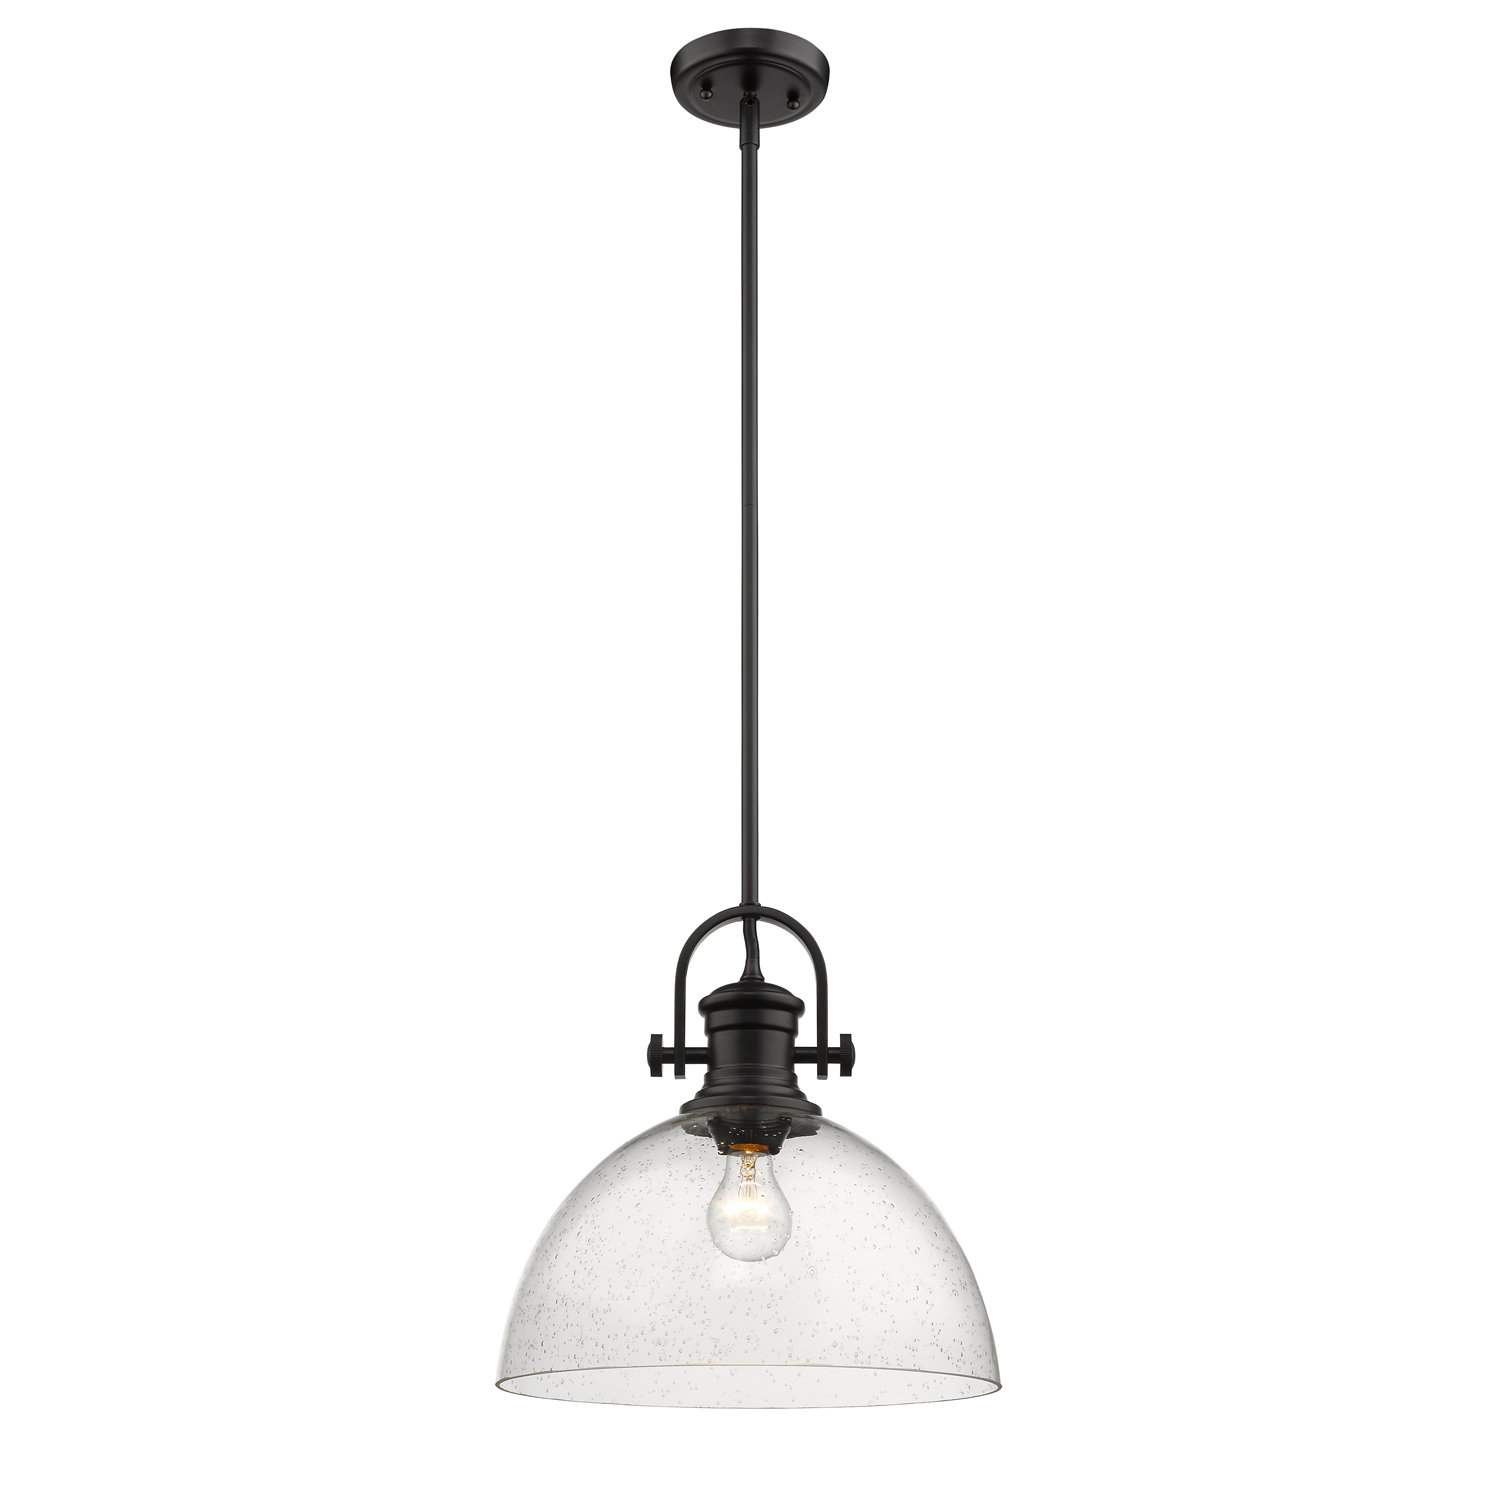 Vedder 1-Light Dome Pendant with regard to Abernathy 1-Light Dome Pendants (Image 30 of 30)